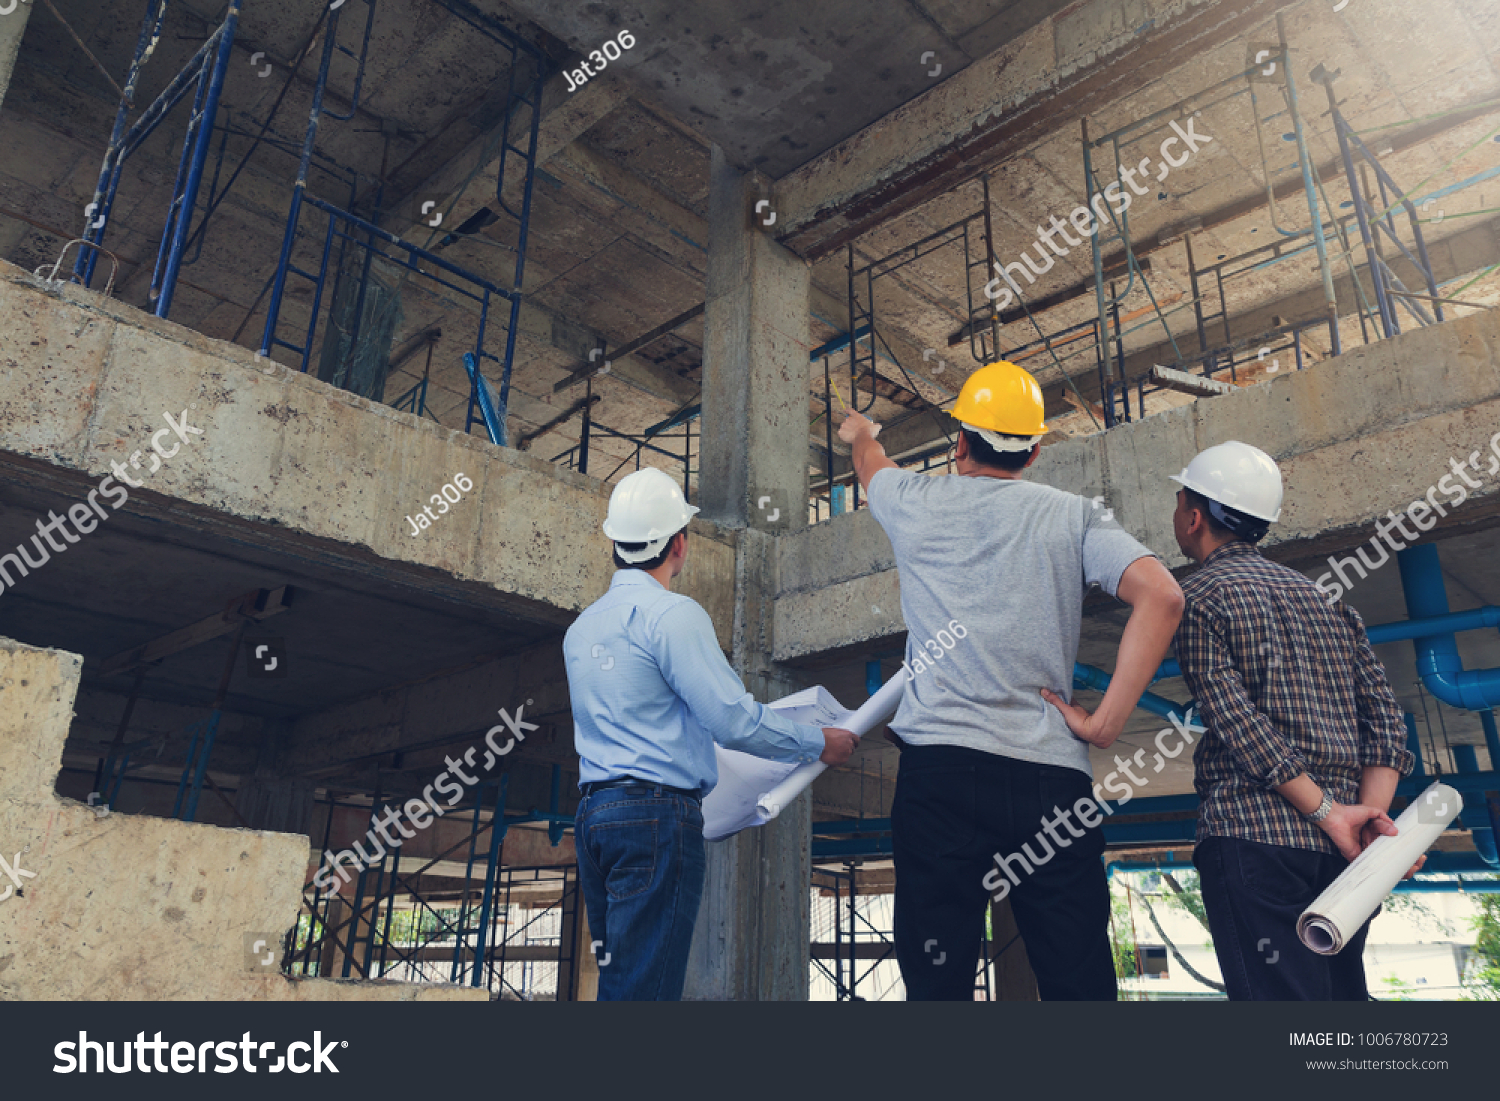 Construction concept of Engineer and Architect working at Construction Site with blue print #1006780723